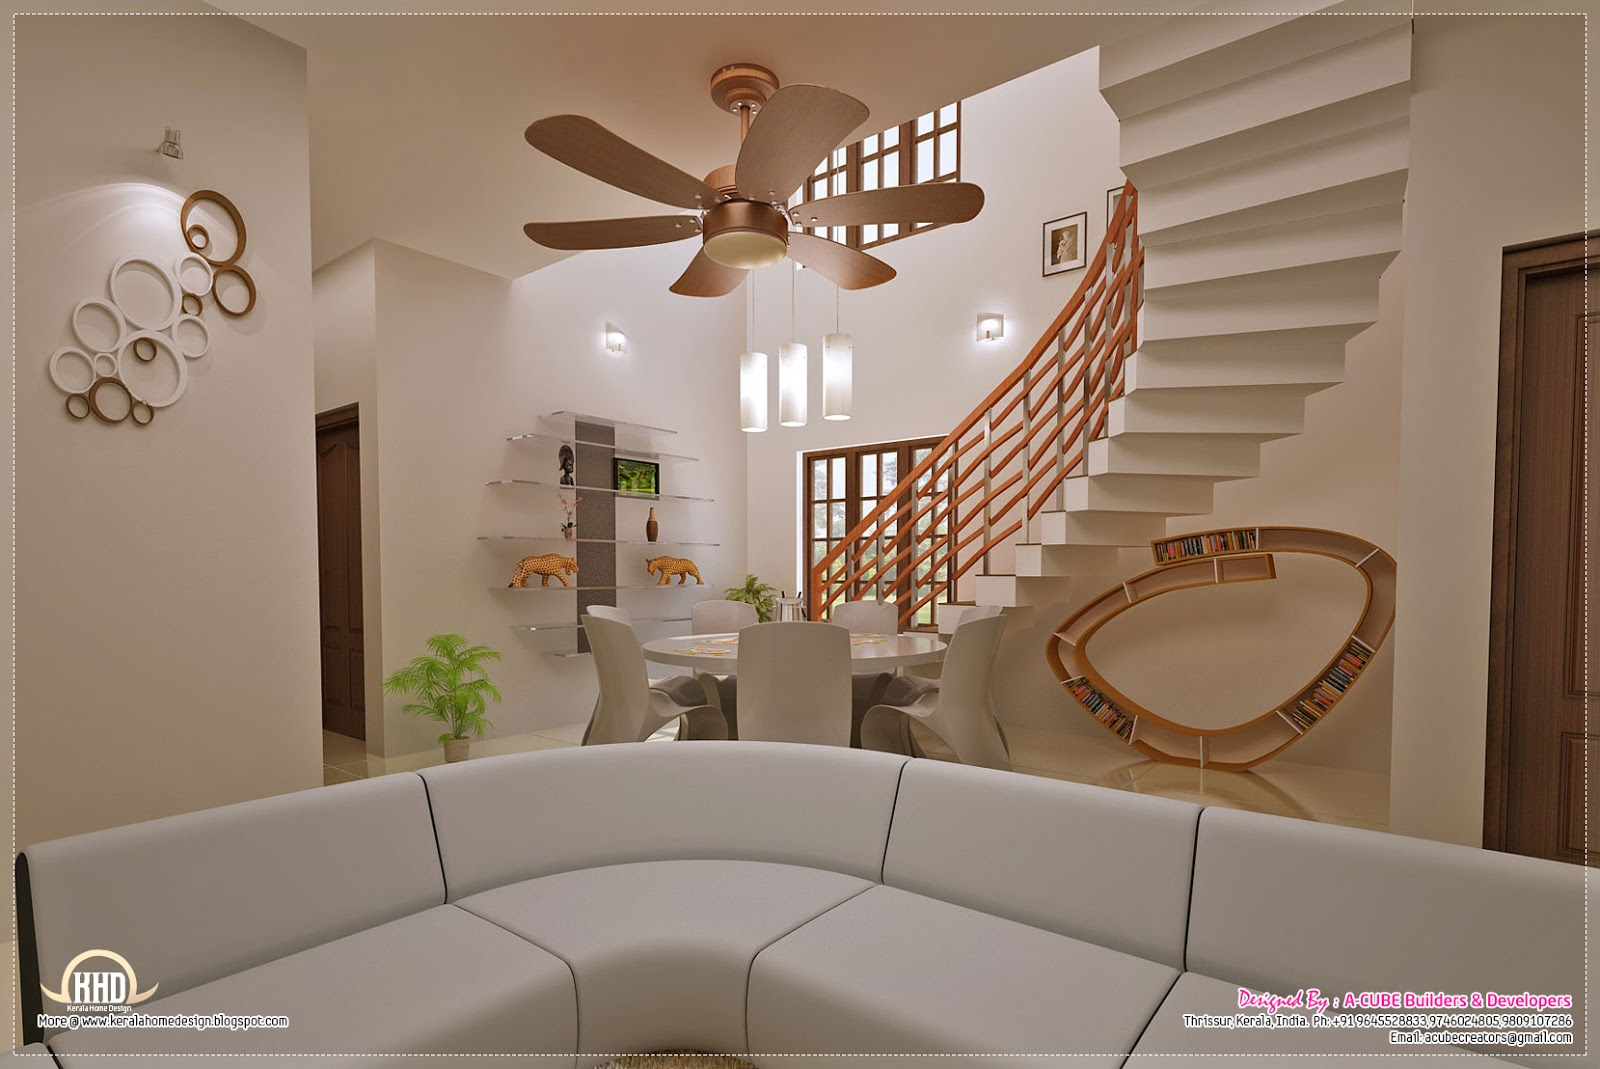 Awesome interior decoration ideas kerala home design and for Interior design for duplex living room